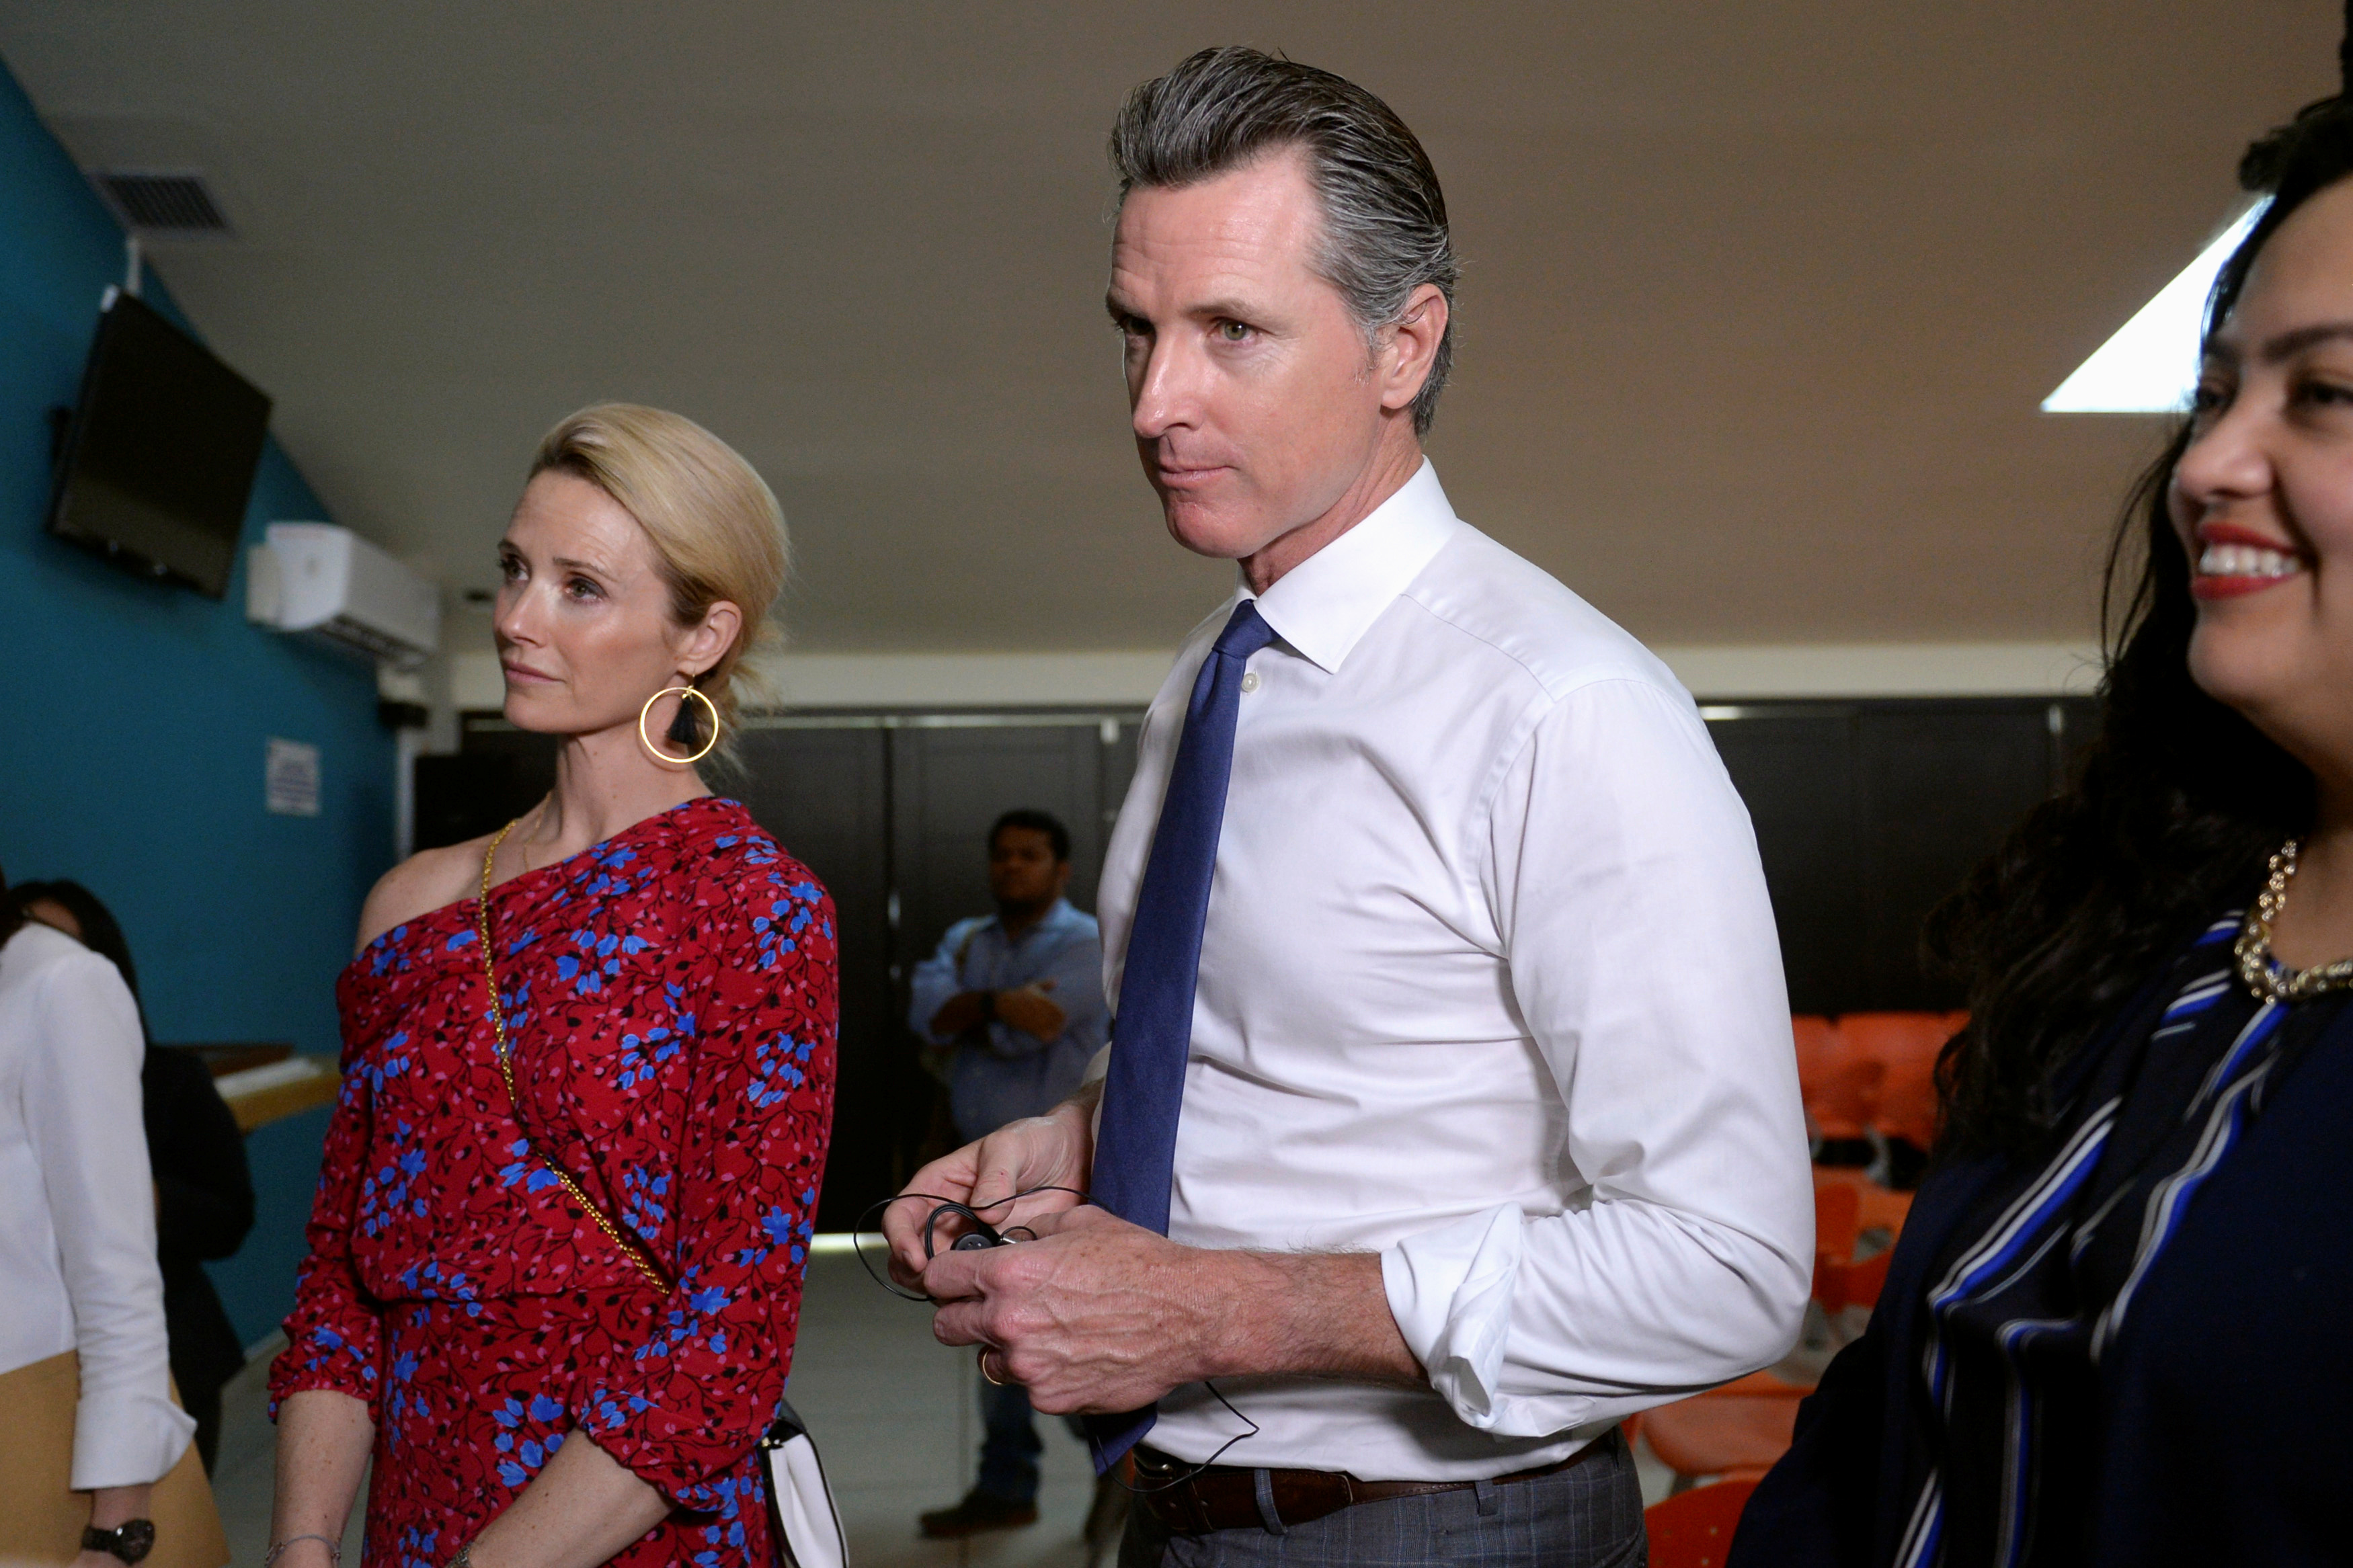 Governor of U.S. state of California Gavin Newsom and his wife Jennifer Siebel Newsom visit the premises of a migrant assistance office in San Salvador